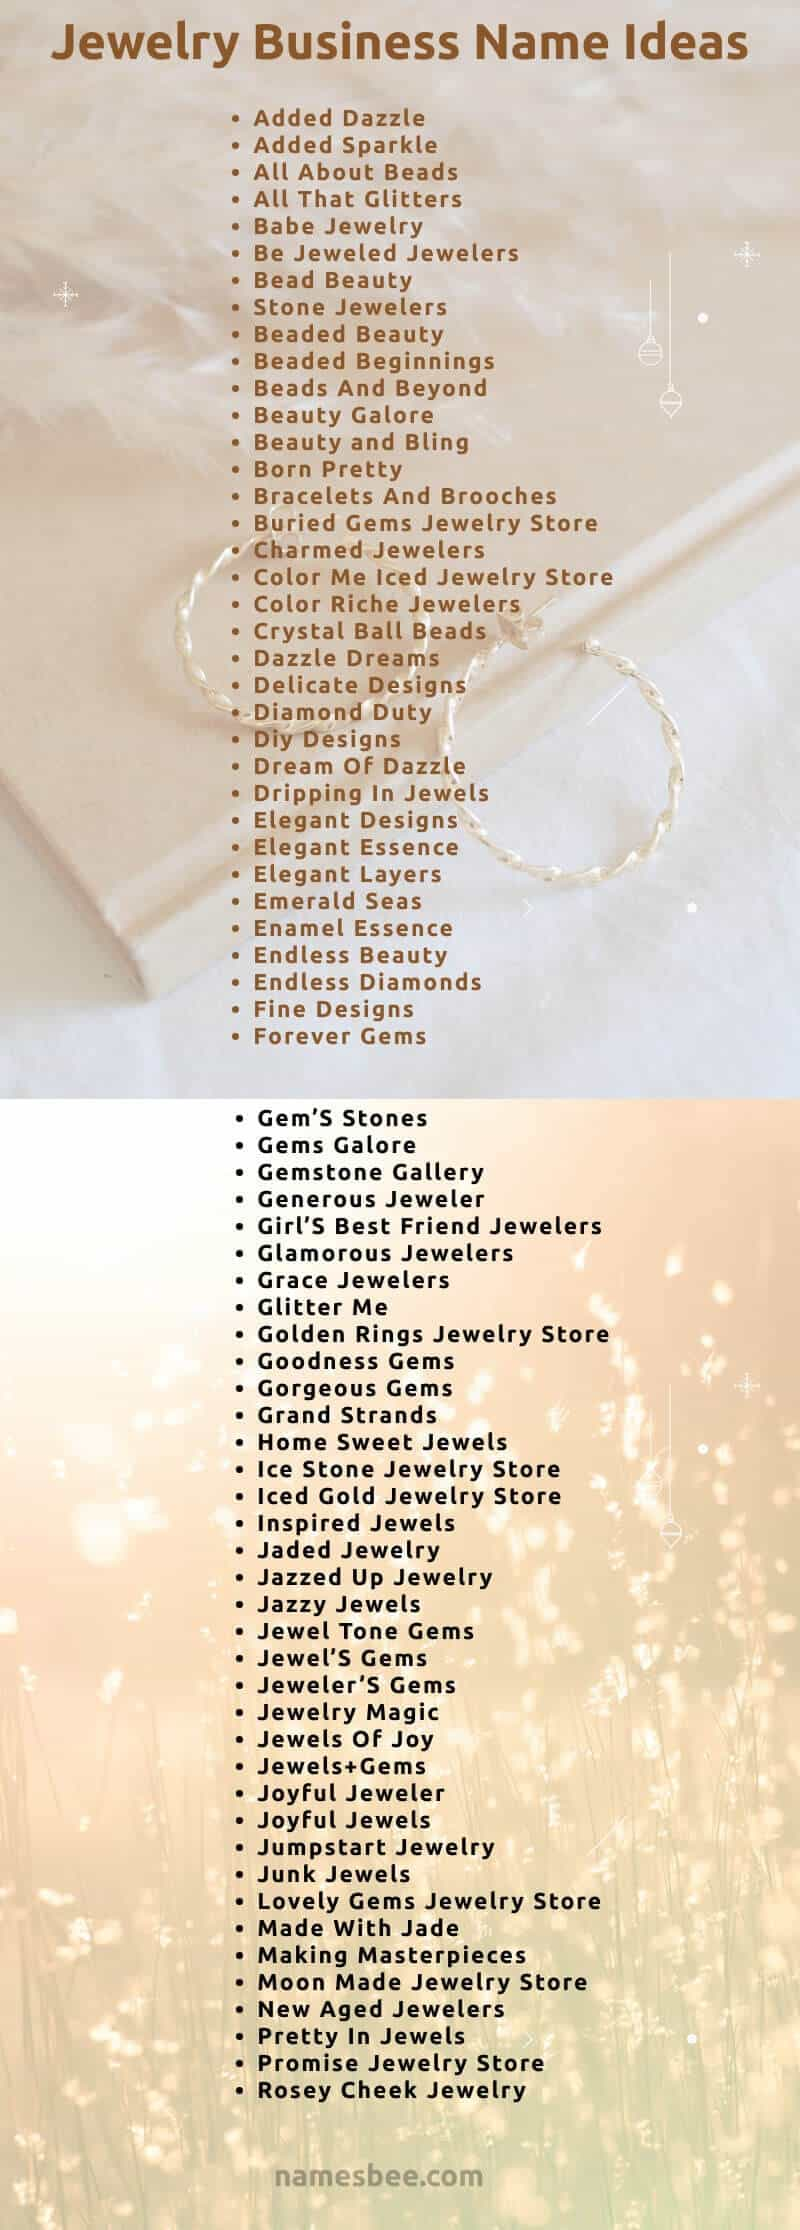 jewelry business names that will make you a brand.